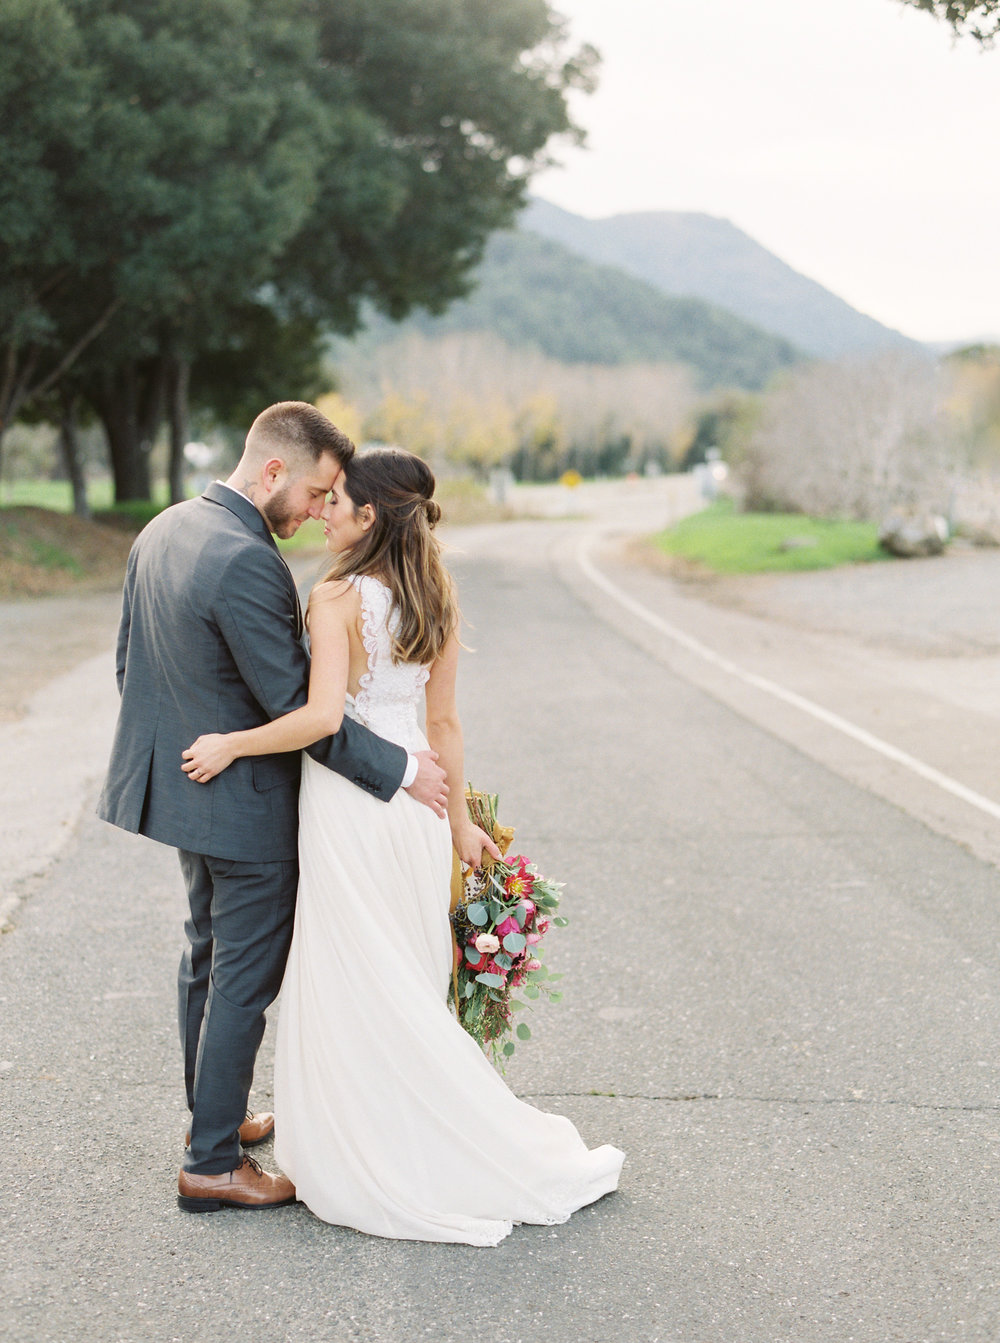 boho-inspired-wedding-at-casa-bella-in-sunol-california-41.jpg